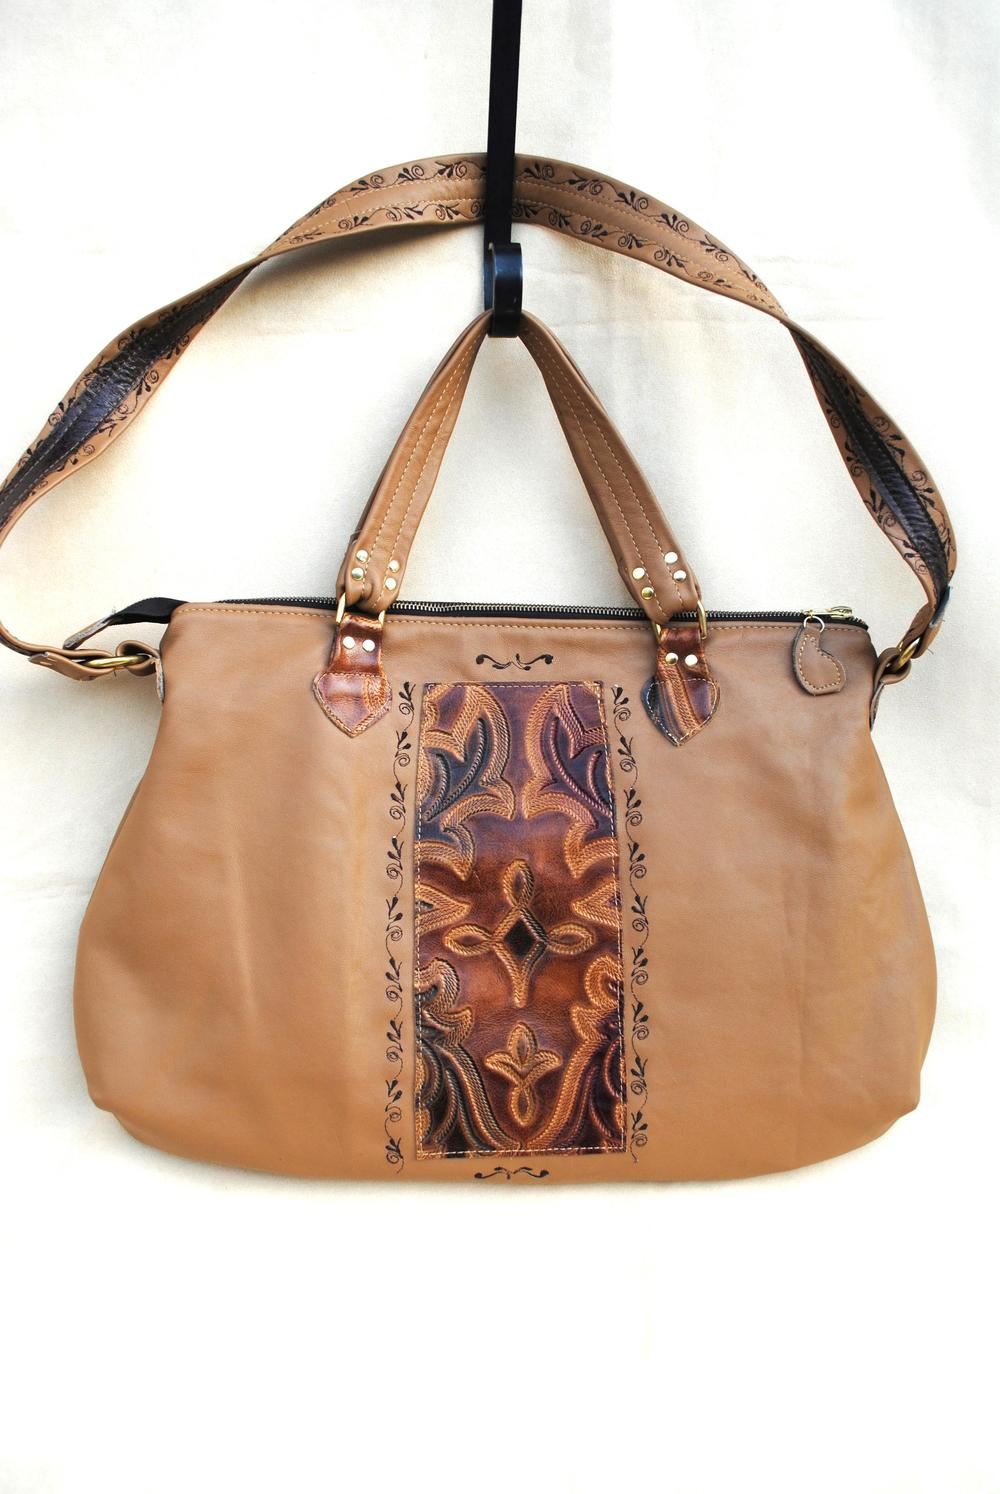 Cocoa CaramelHand Tooled and Embroidered Leather Executive Bag